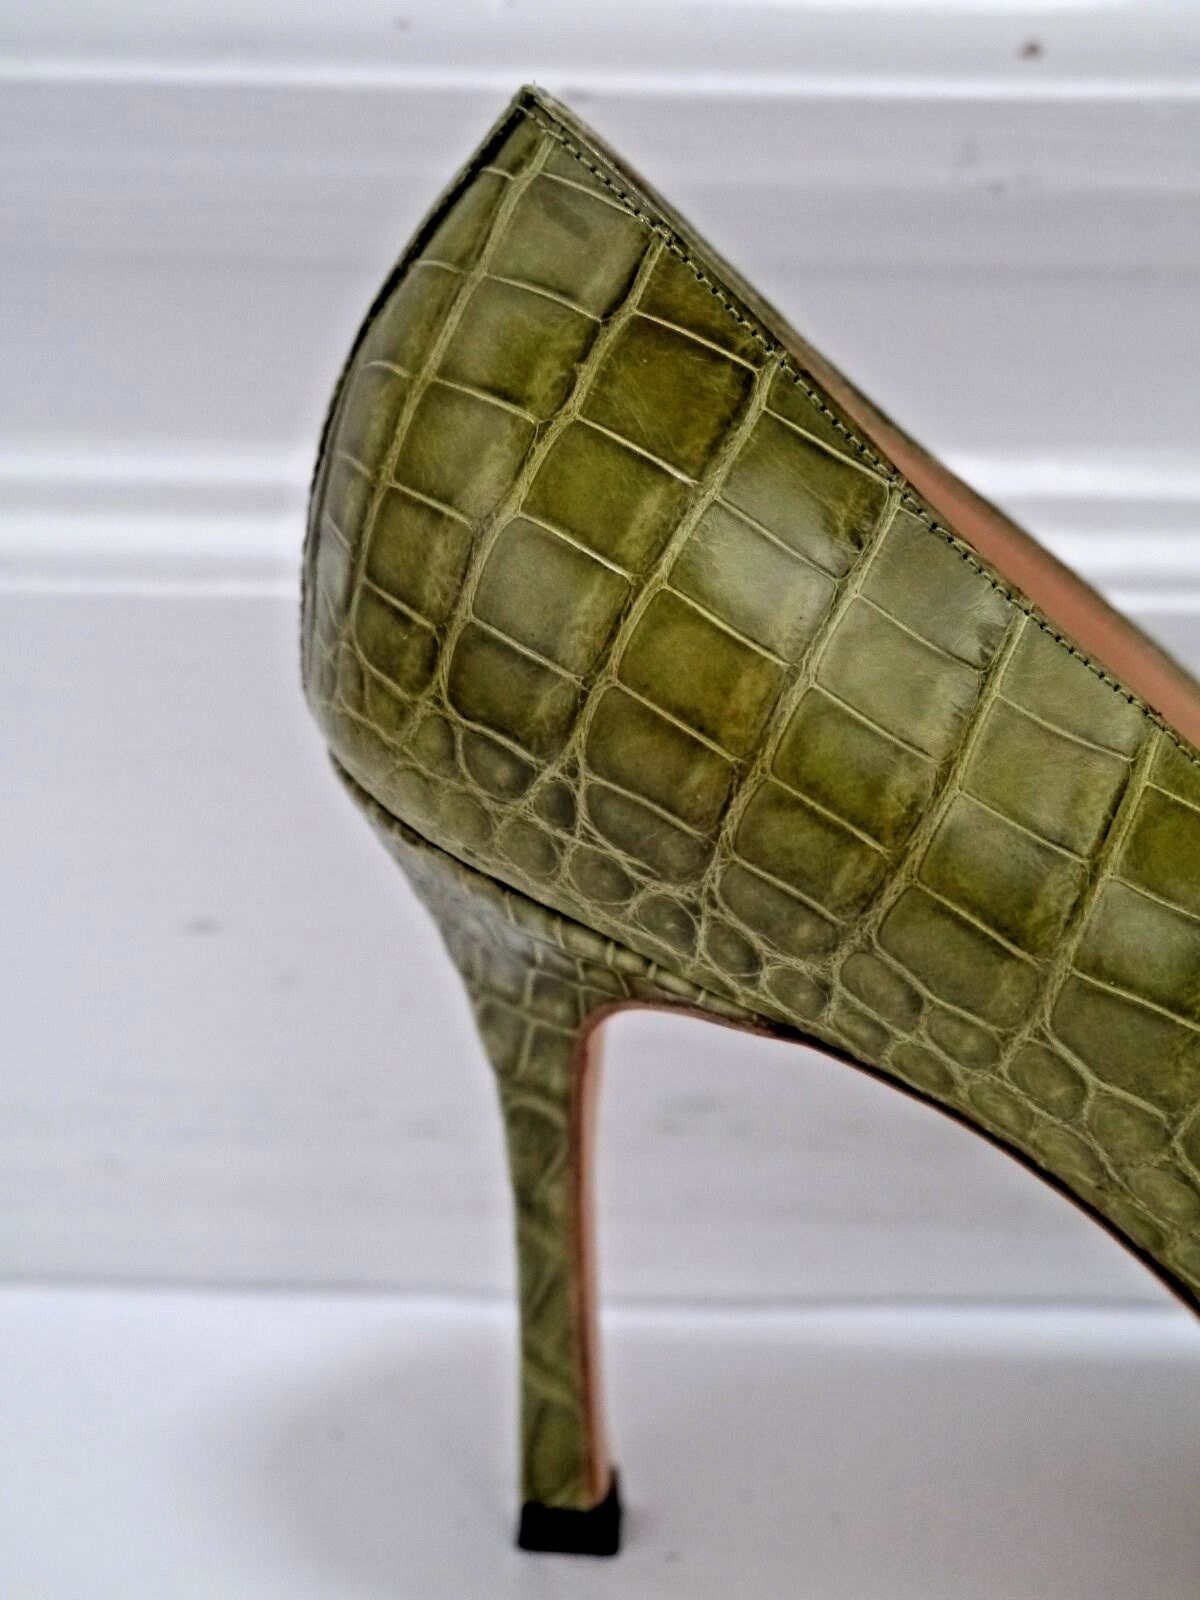 NEW MANOLO BLAHNIK  3050 olive genuine alligator alligator alligator crocodile heels pumps size 39.5 7c9df6